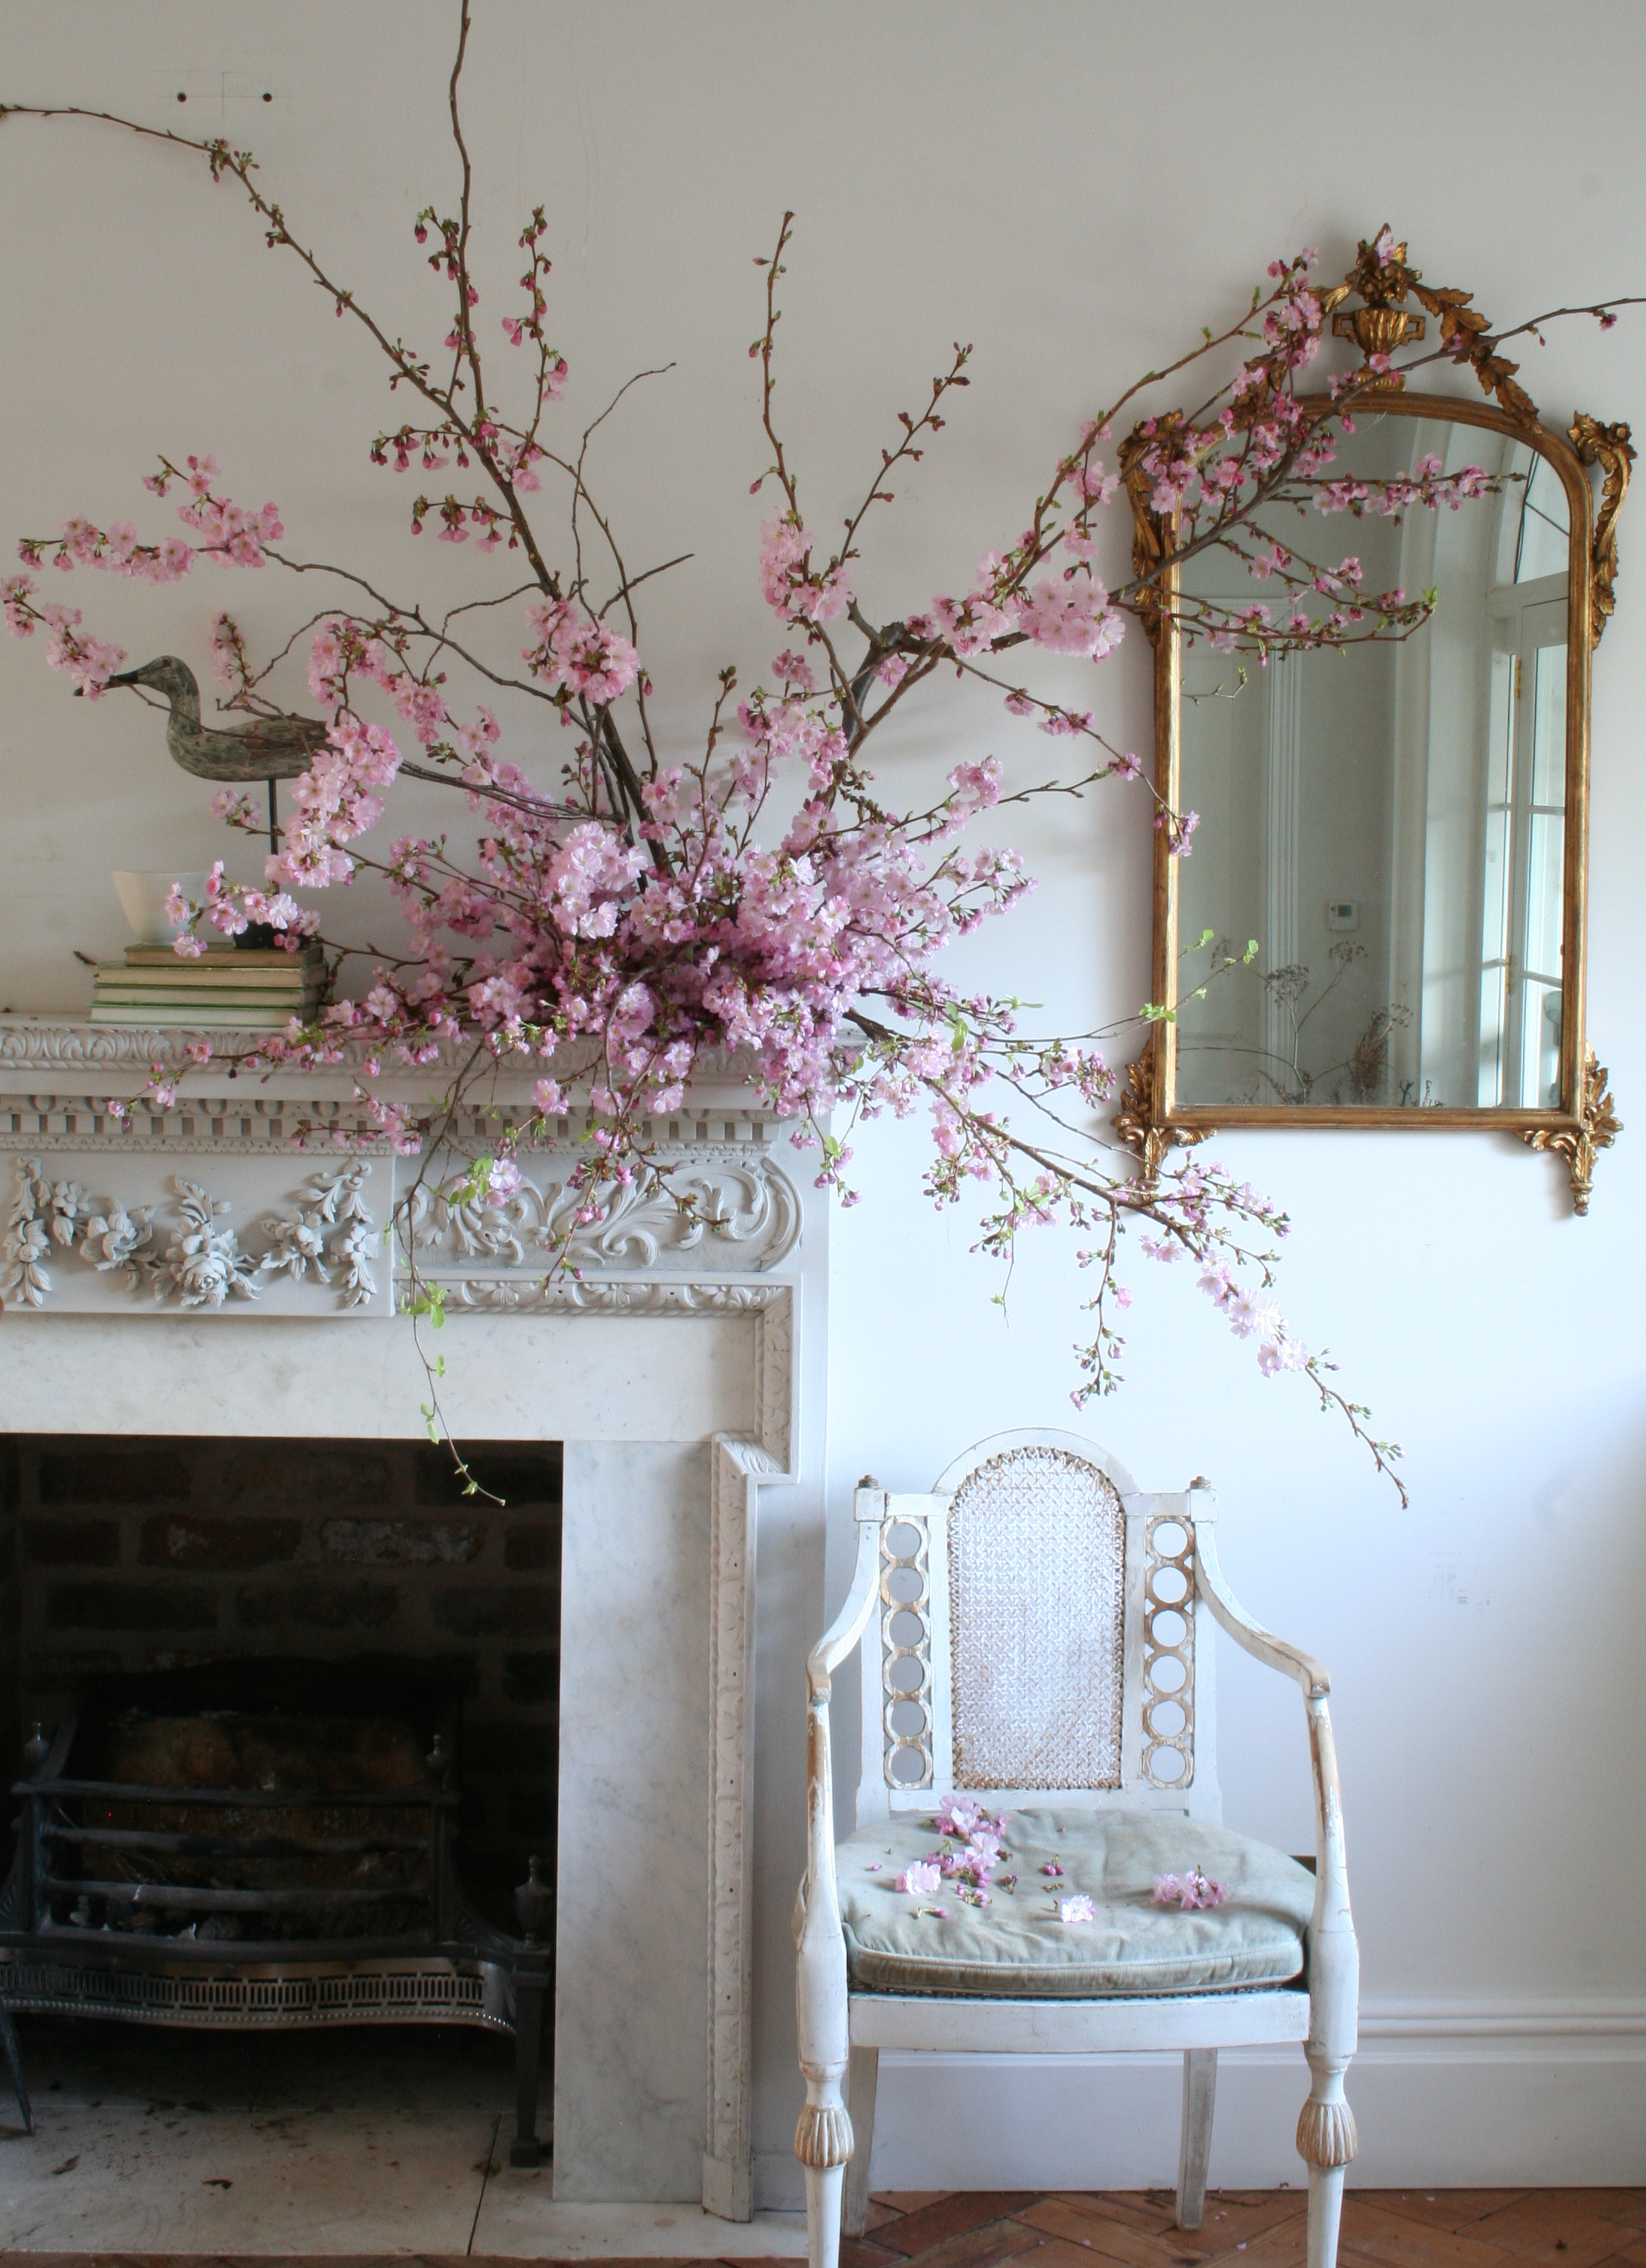 Prunus 'Accolade'. Photo by Lucy